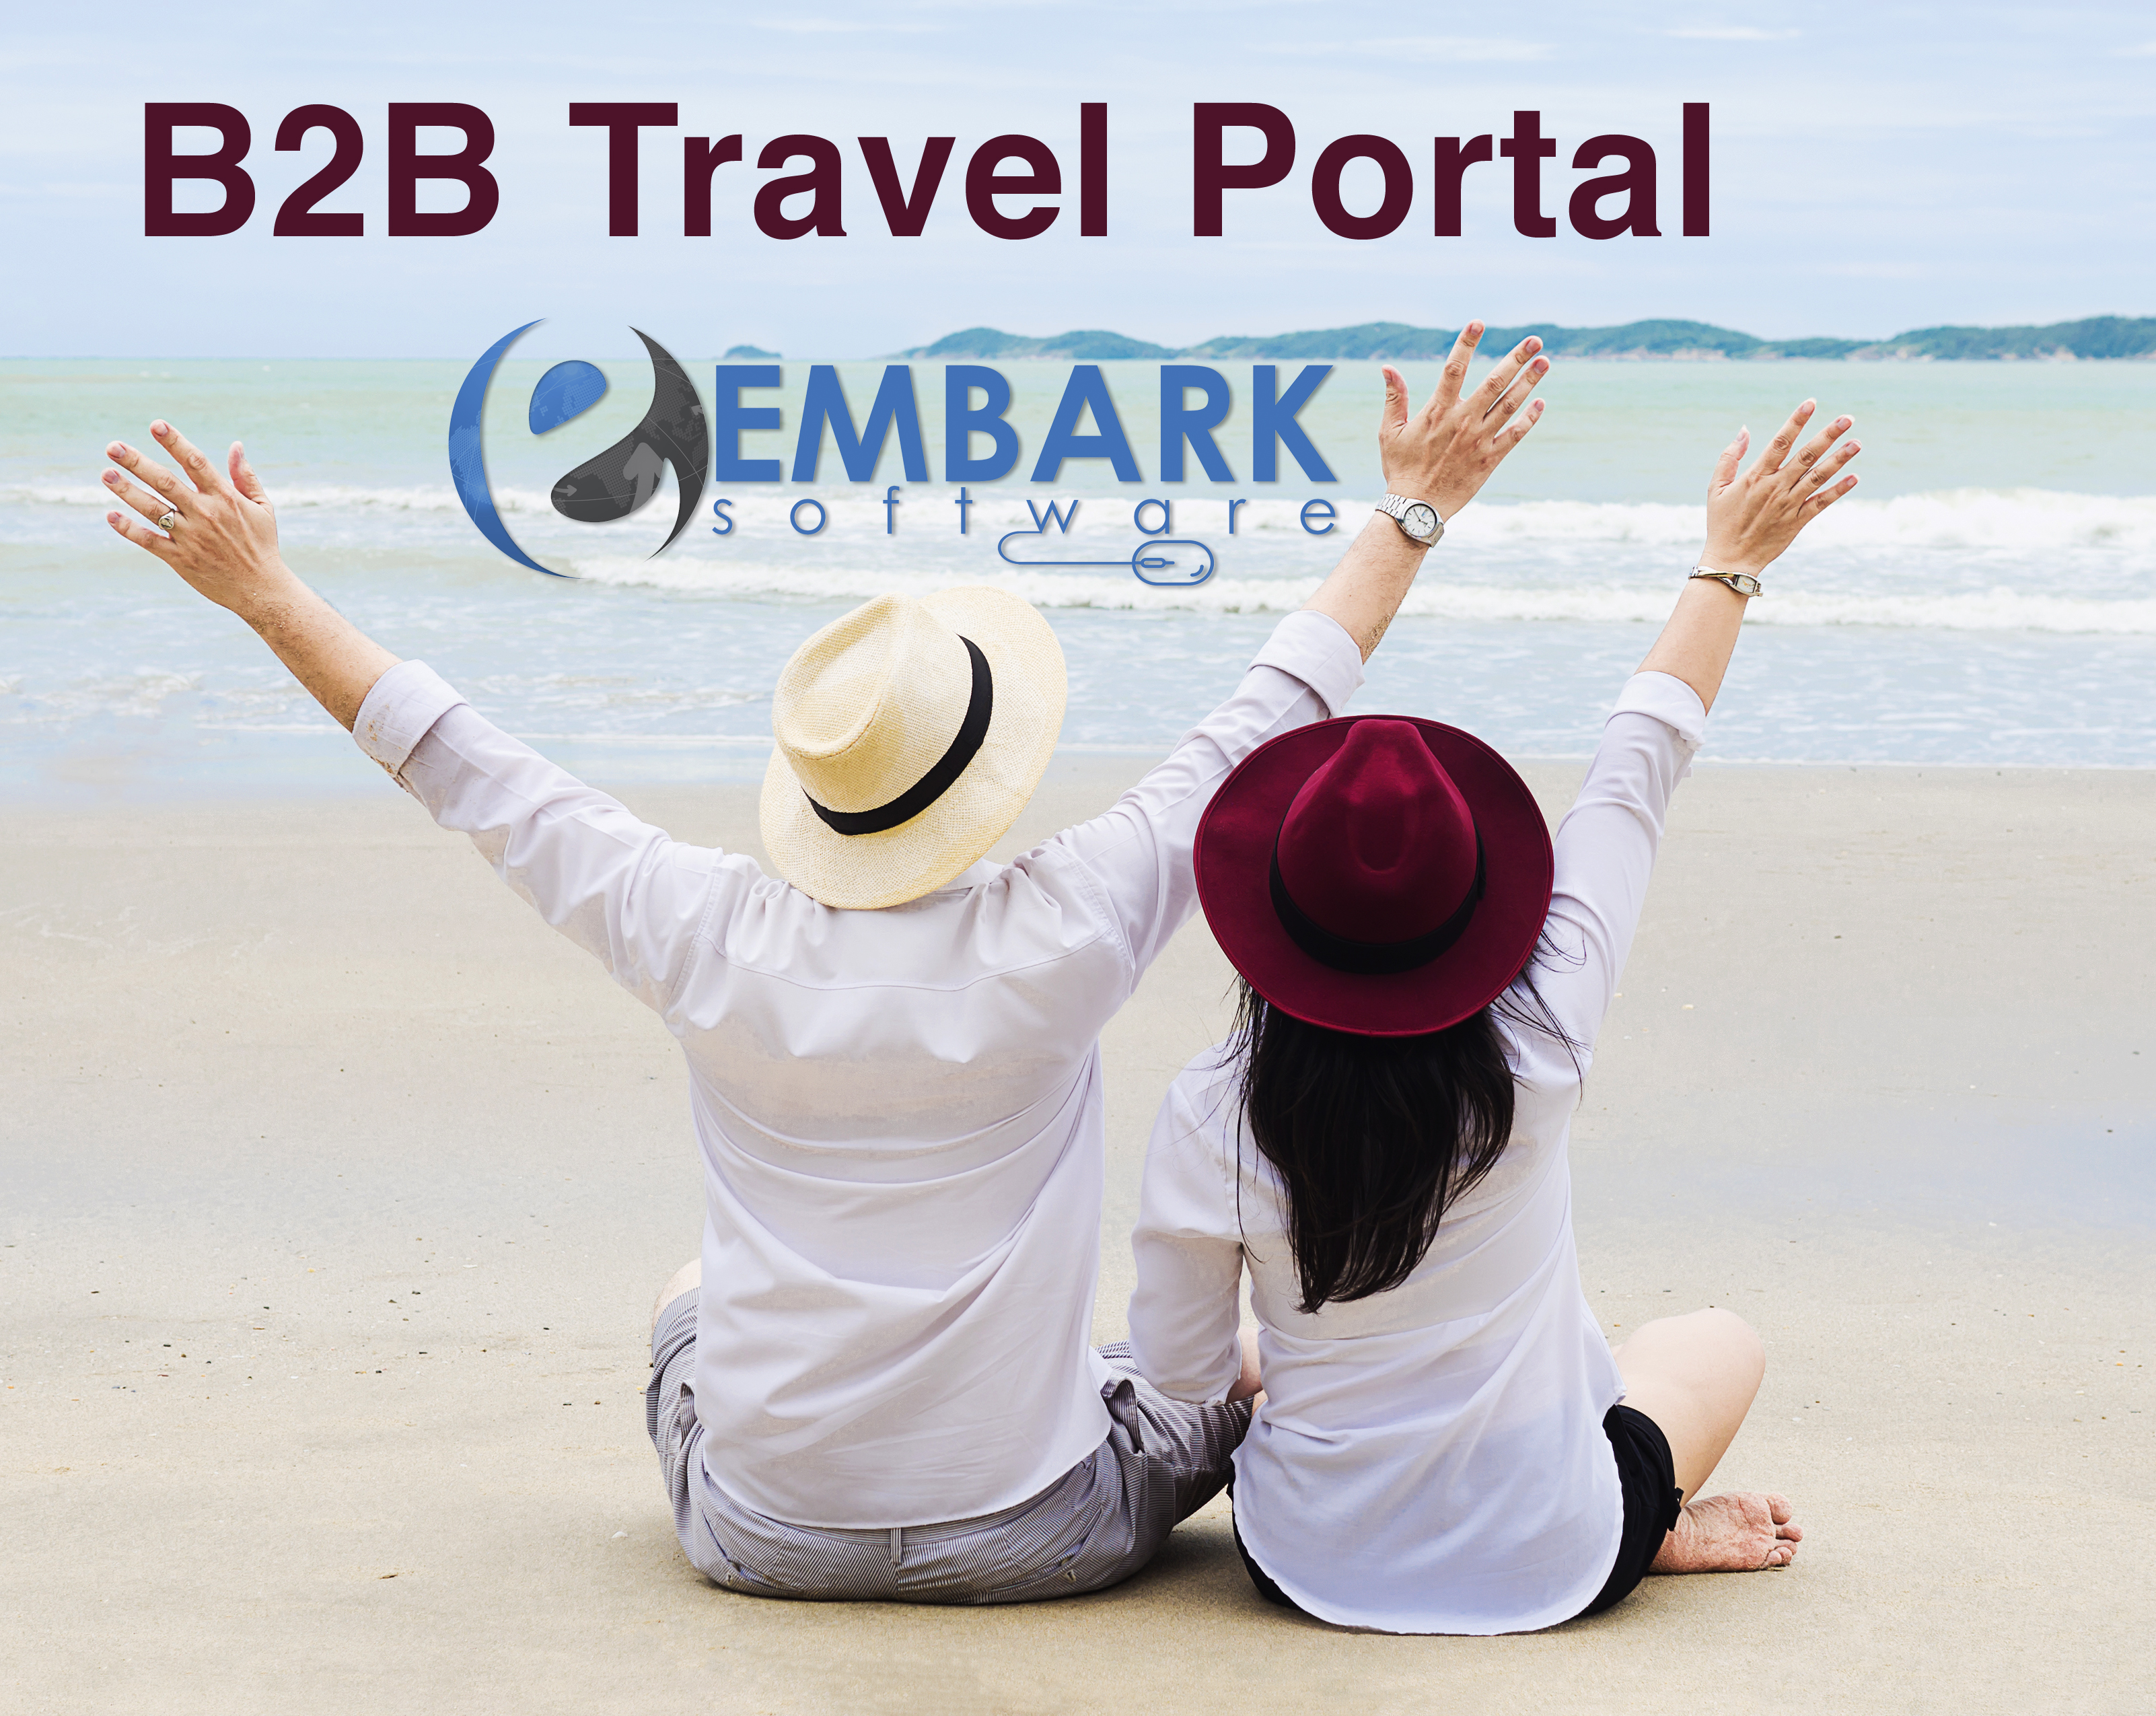 Various ways to increase your sales by having B2B travel portal